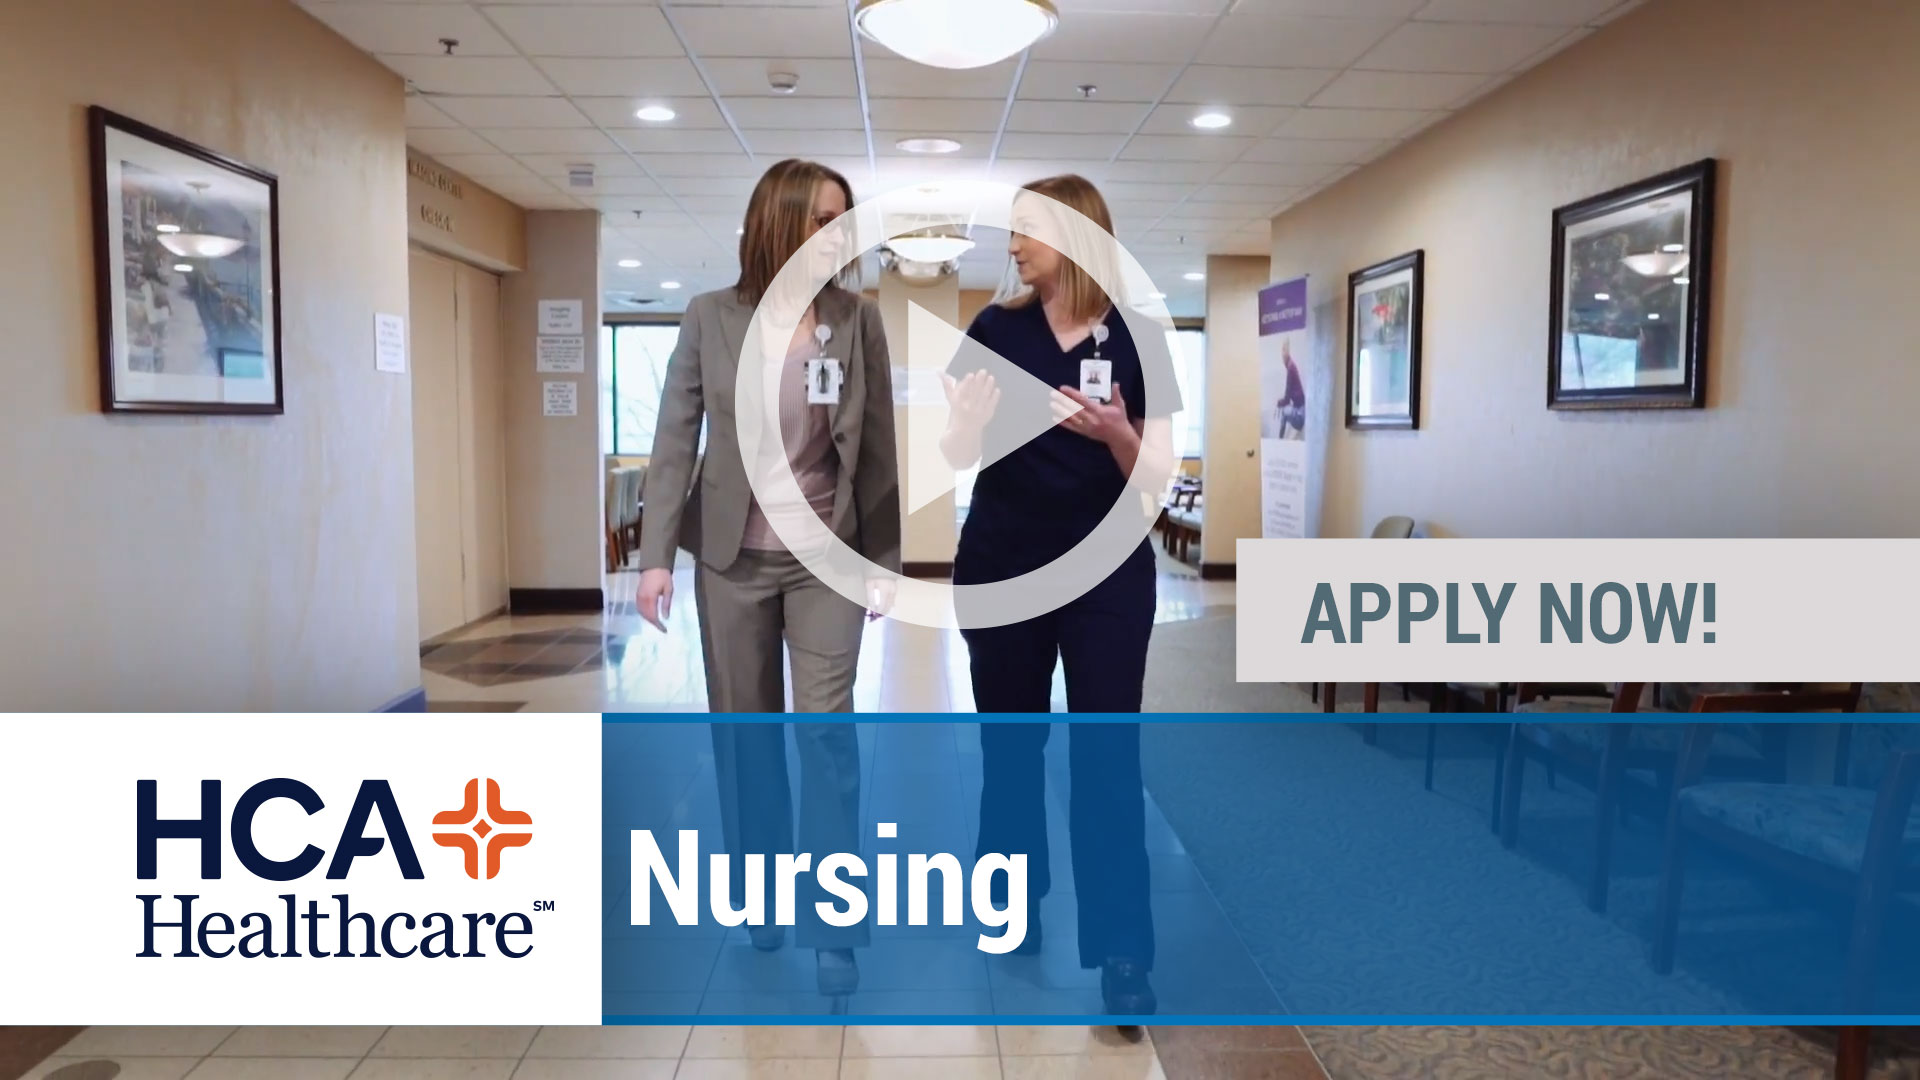 Watch our careers video for available job opening Multiple Job Opportunities Now Available with HCA in Multiple Locations Nationwide